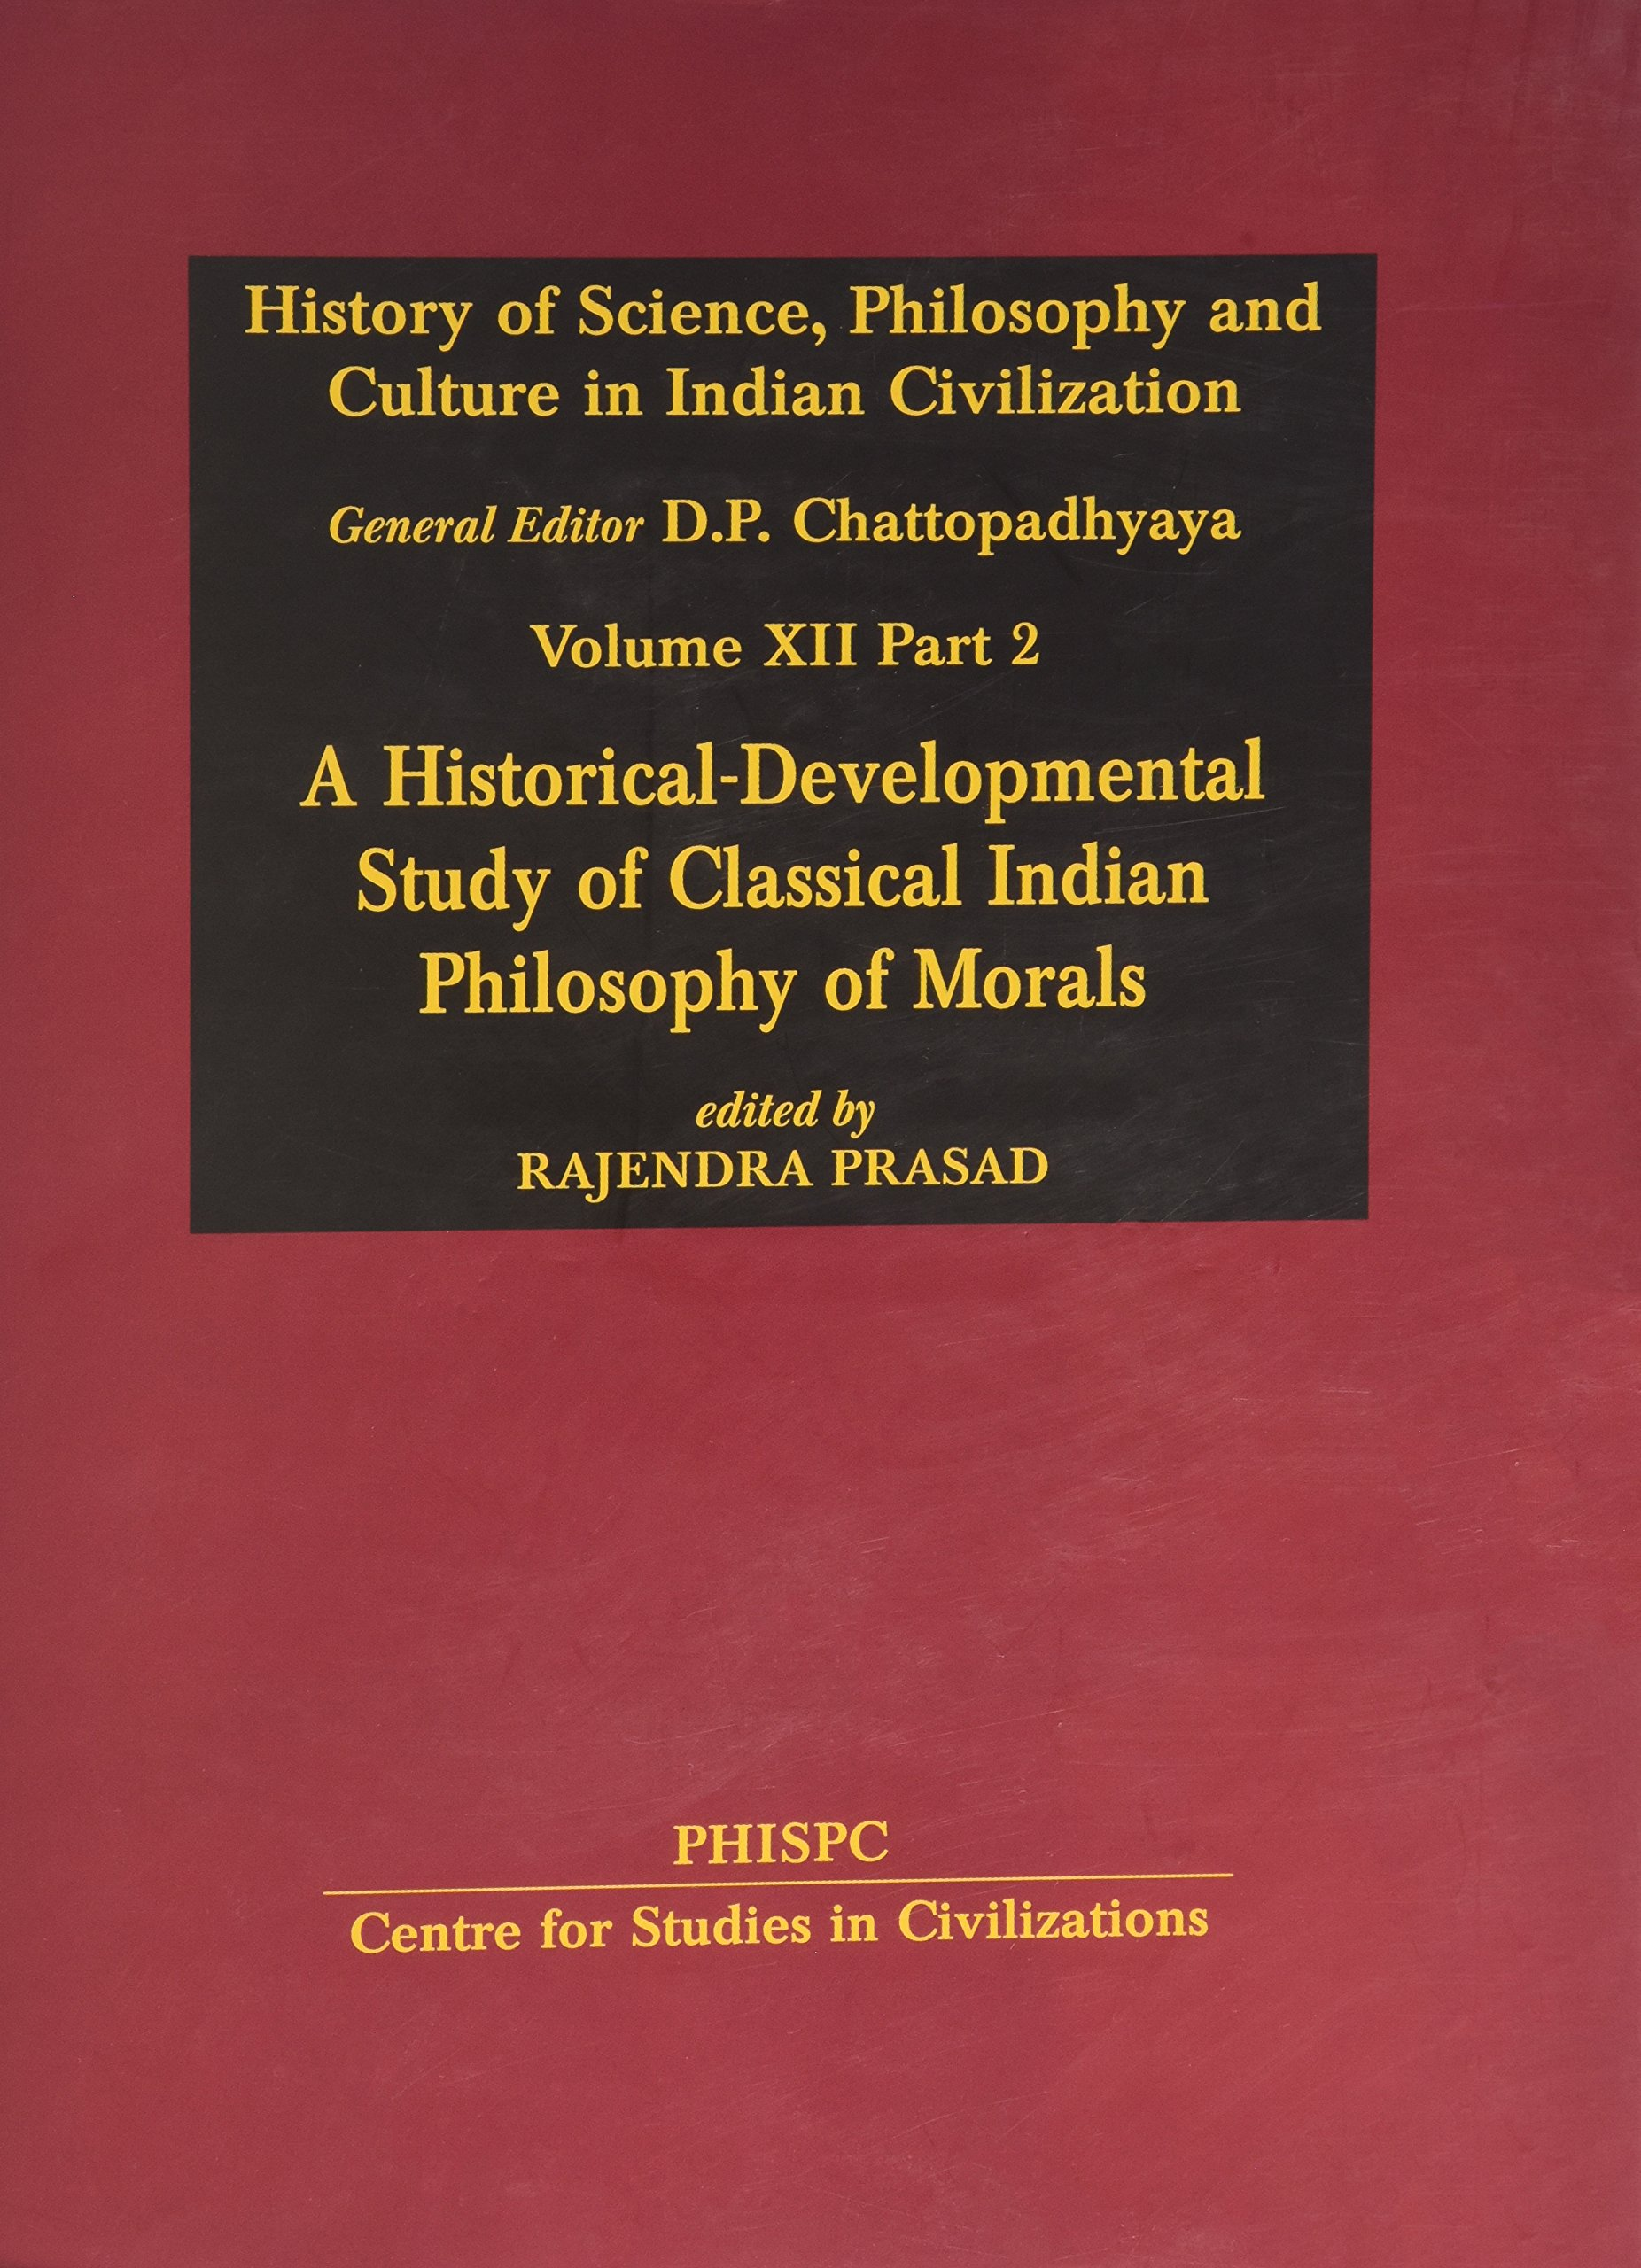 Download A Historical Developmental Study of Classical Indian Philosophy of Morals: v. 12 PDF